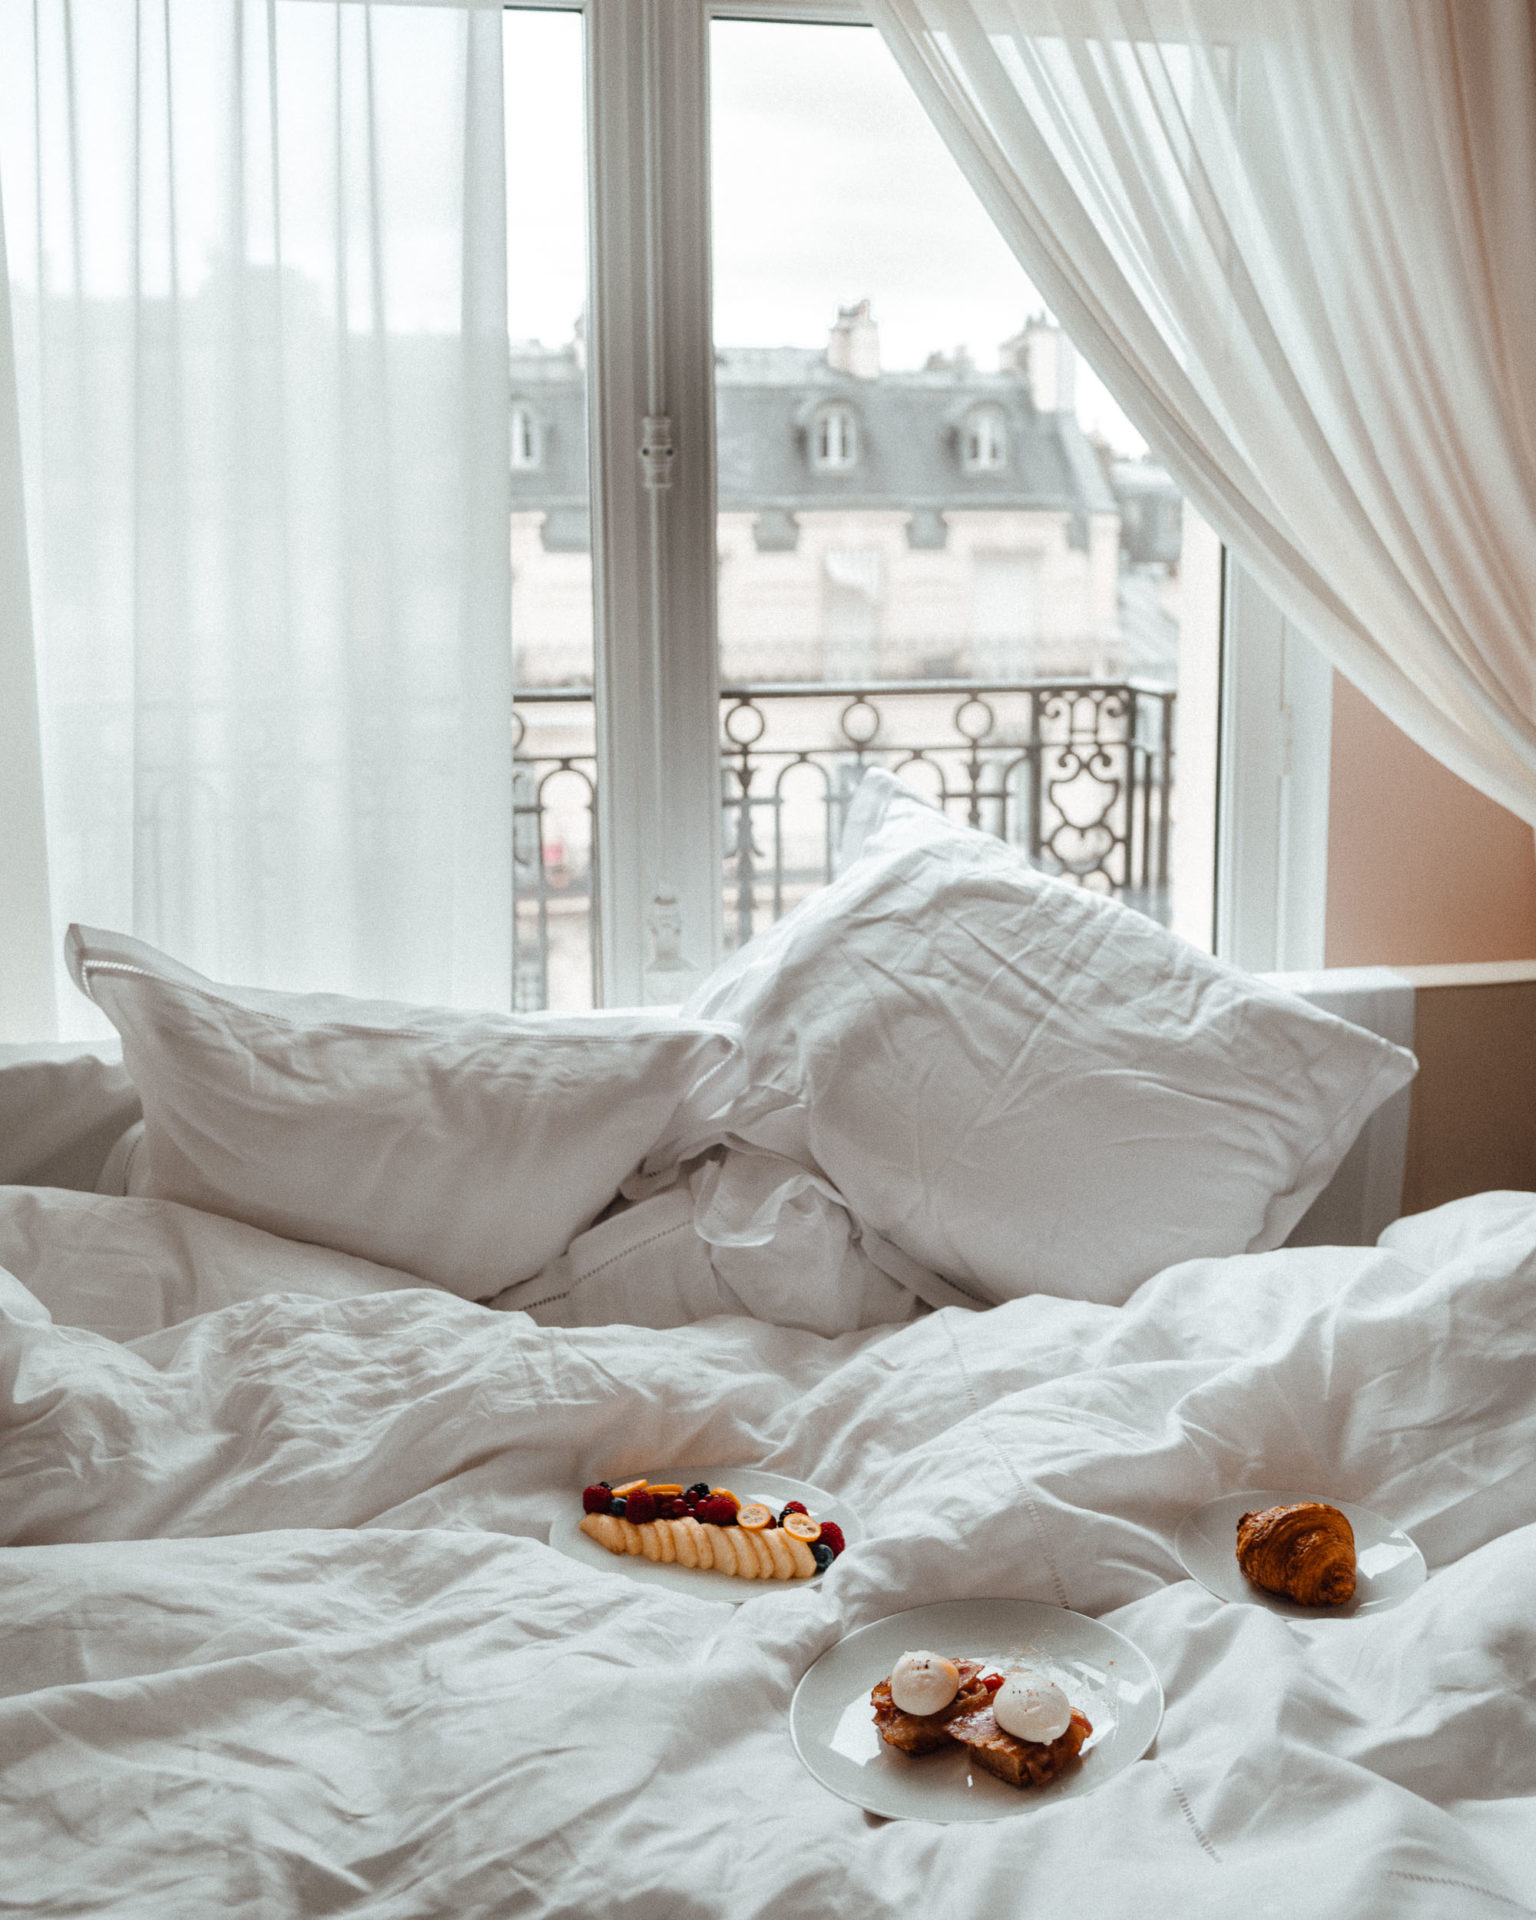 Breakfast in bed at Le Royal Monceau Paris Hotel